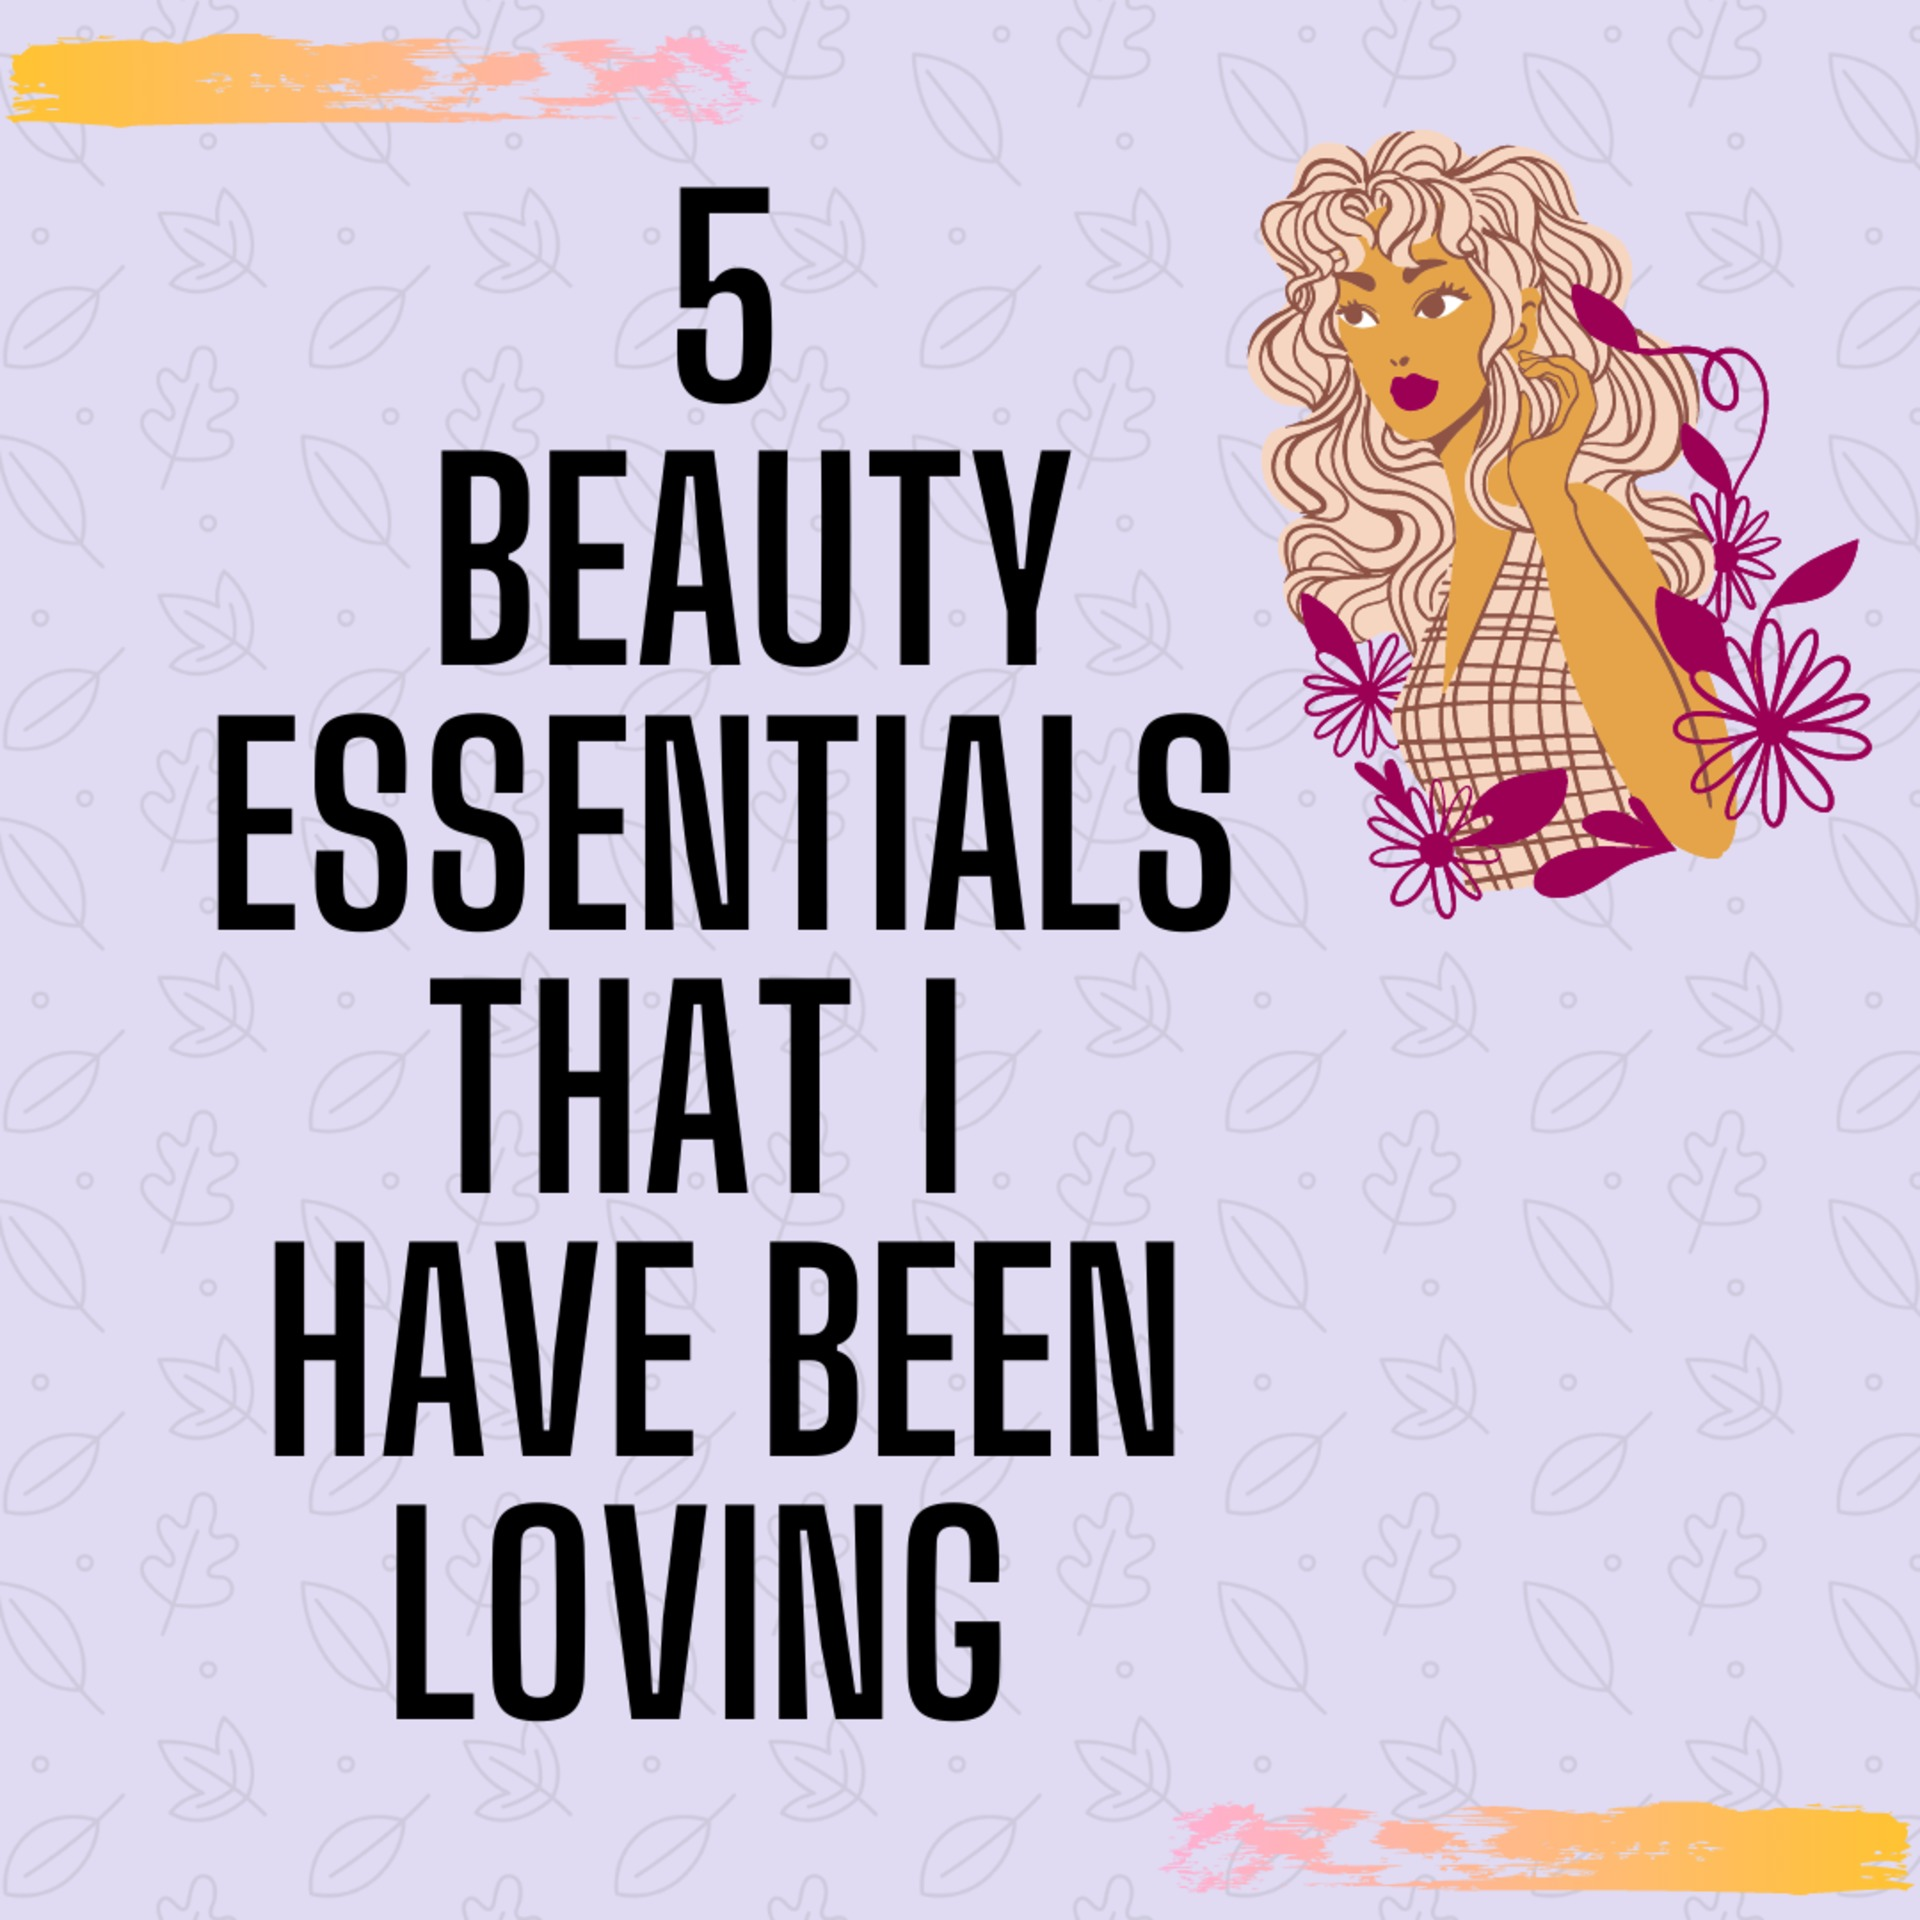 5 Beauty Essentials that I have been LOVING image